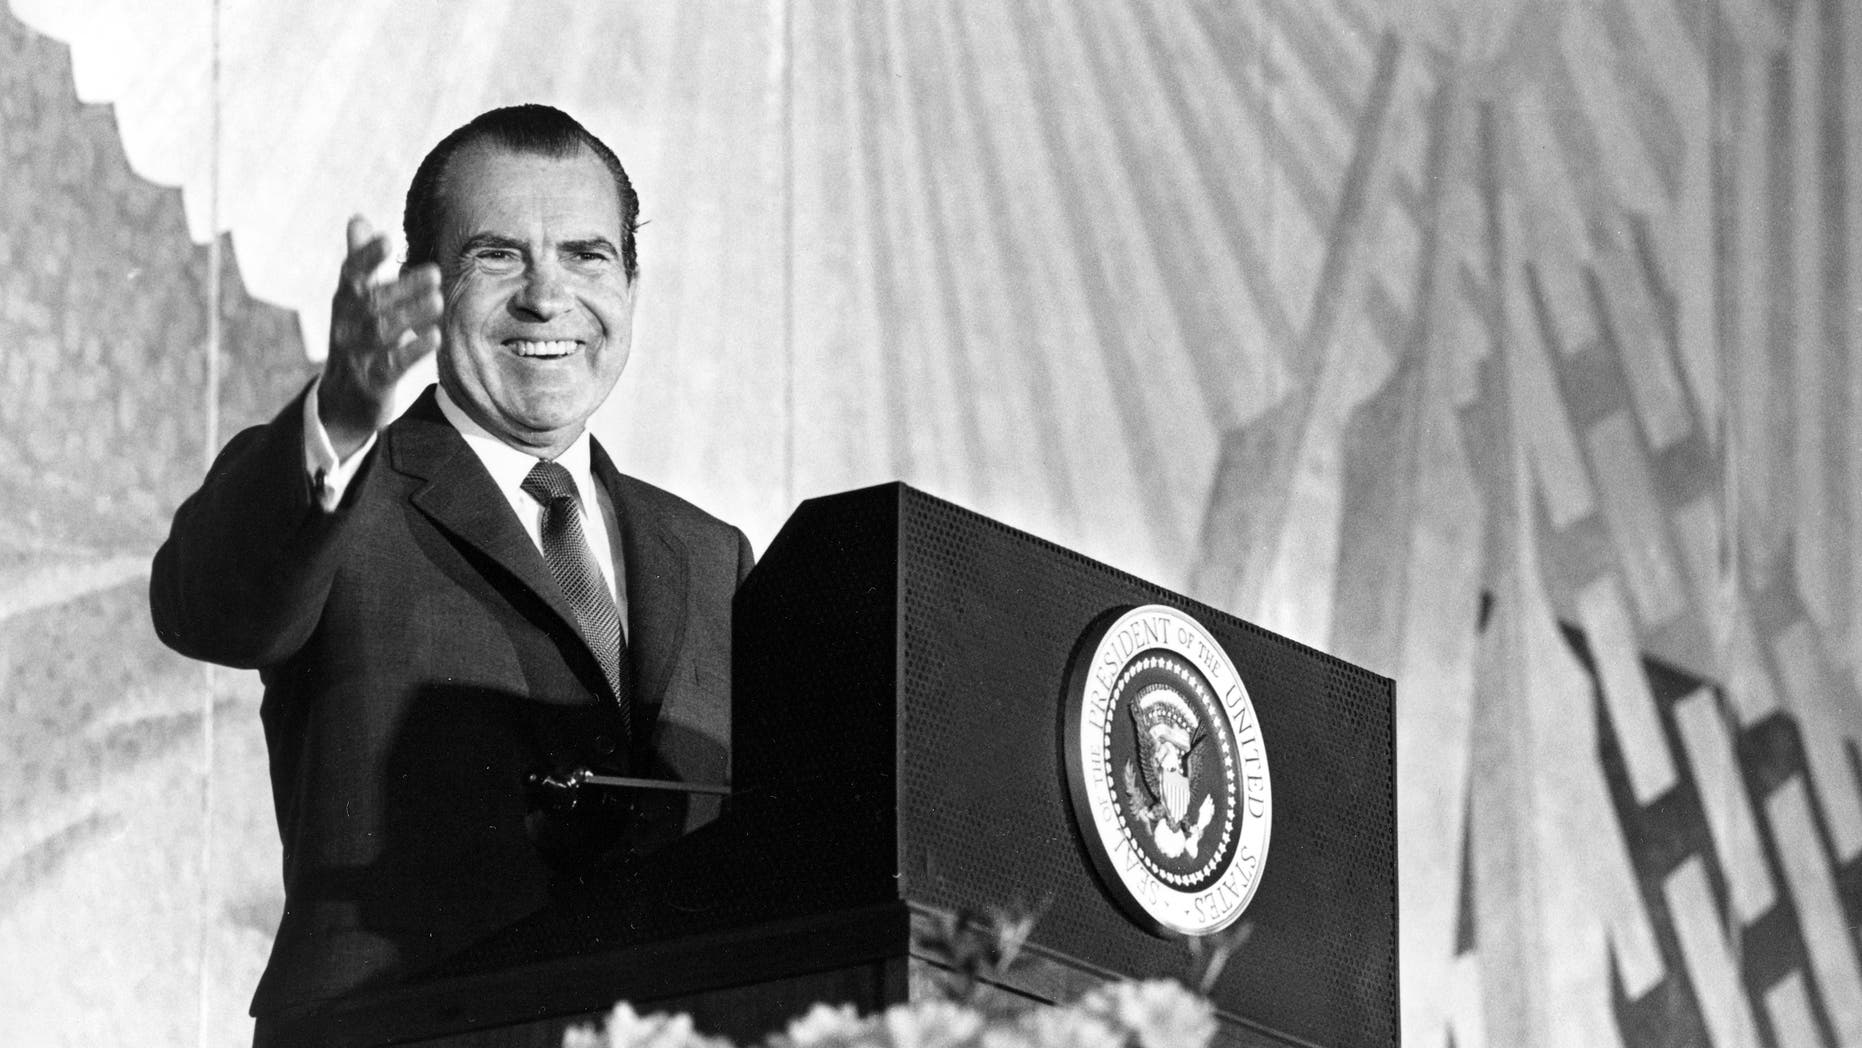 """President Nixon appears in Washington, April 29, 1969, before the general session of the annual meeting of the U.S. Chamber of Commerce.  Speaking on campus unrest, Nixon said dissent is welcome provided it is peaceful.  """"There can be no compromise with lawlessness and no surrender to force if free education is to survive in the United States of America,"""" he added.  (AP Photo)"""